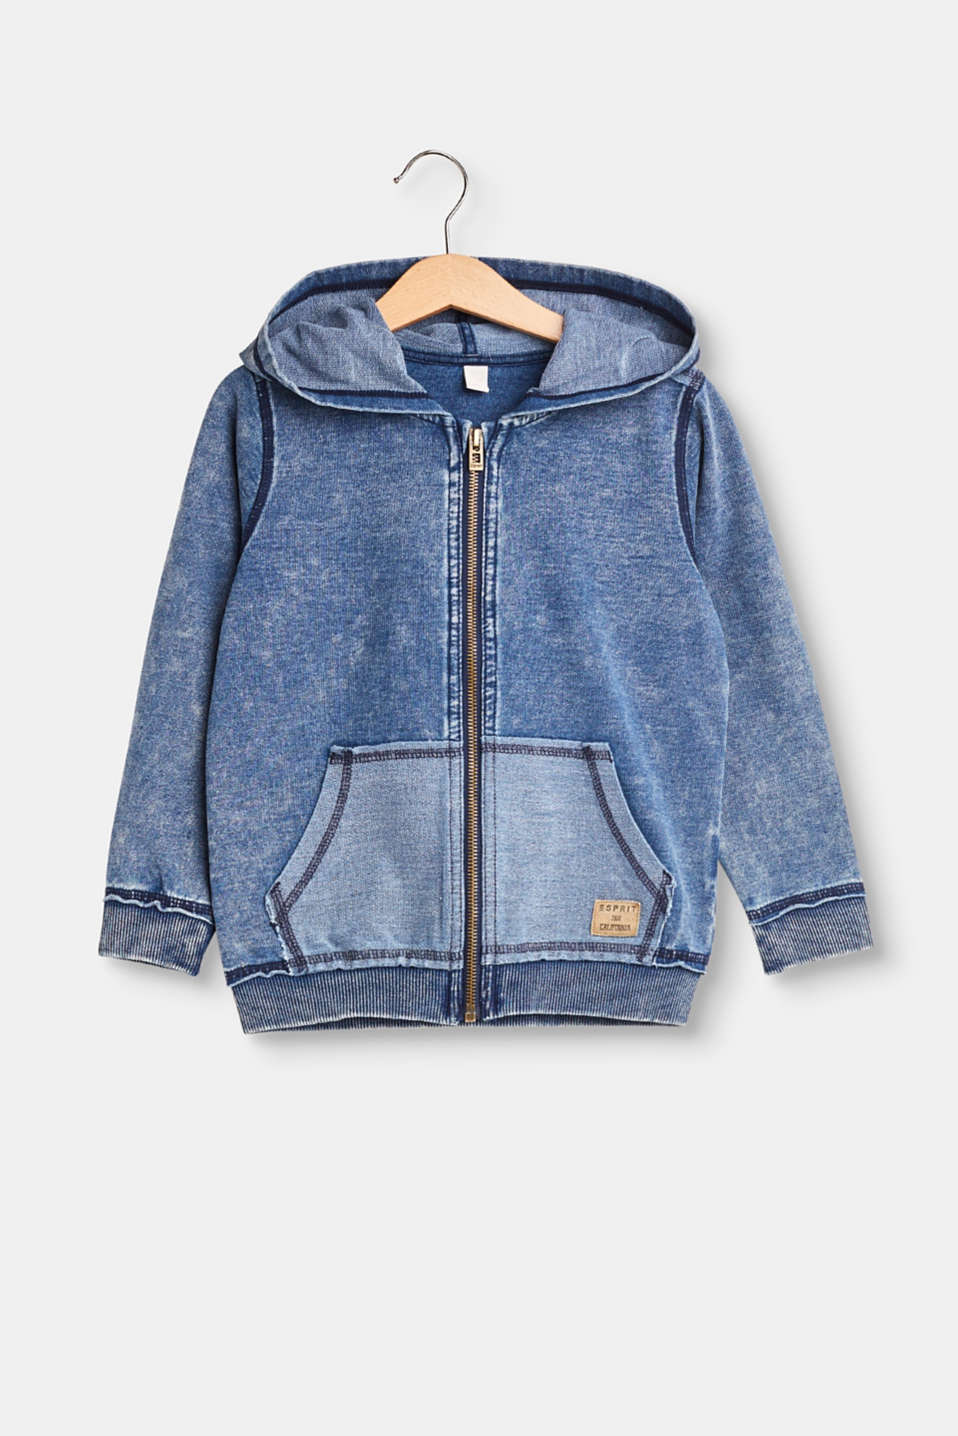 This sweatshirt cardigan in a denim style gets its vintage look from the cool garment wash and unfinished edges!